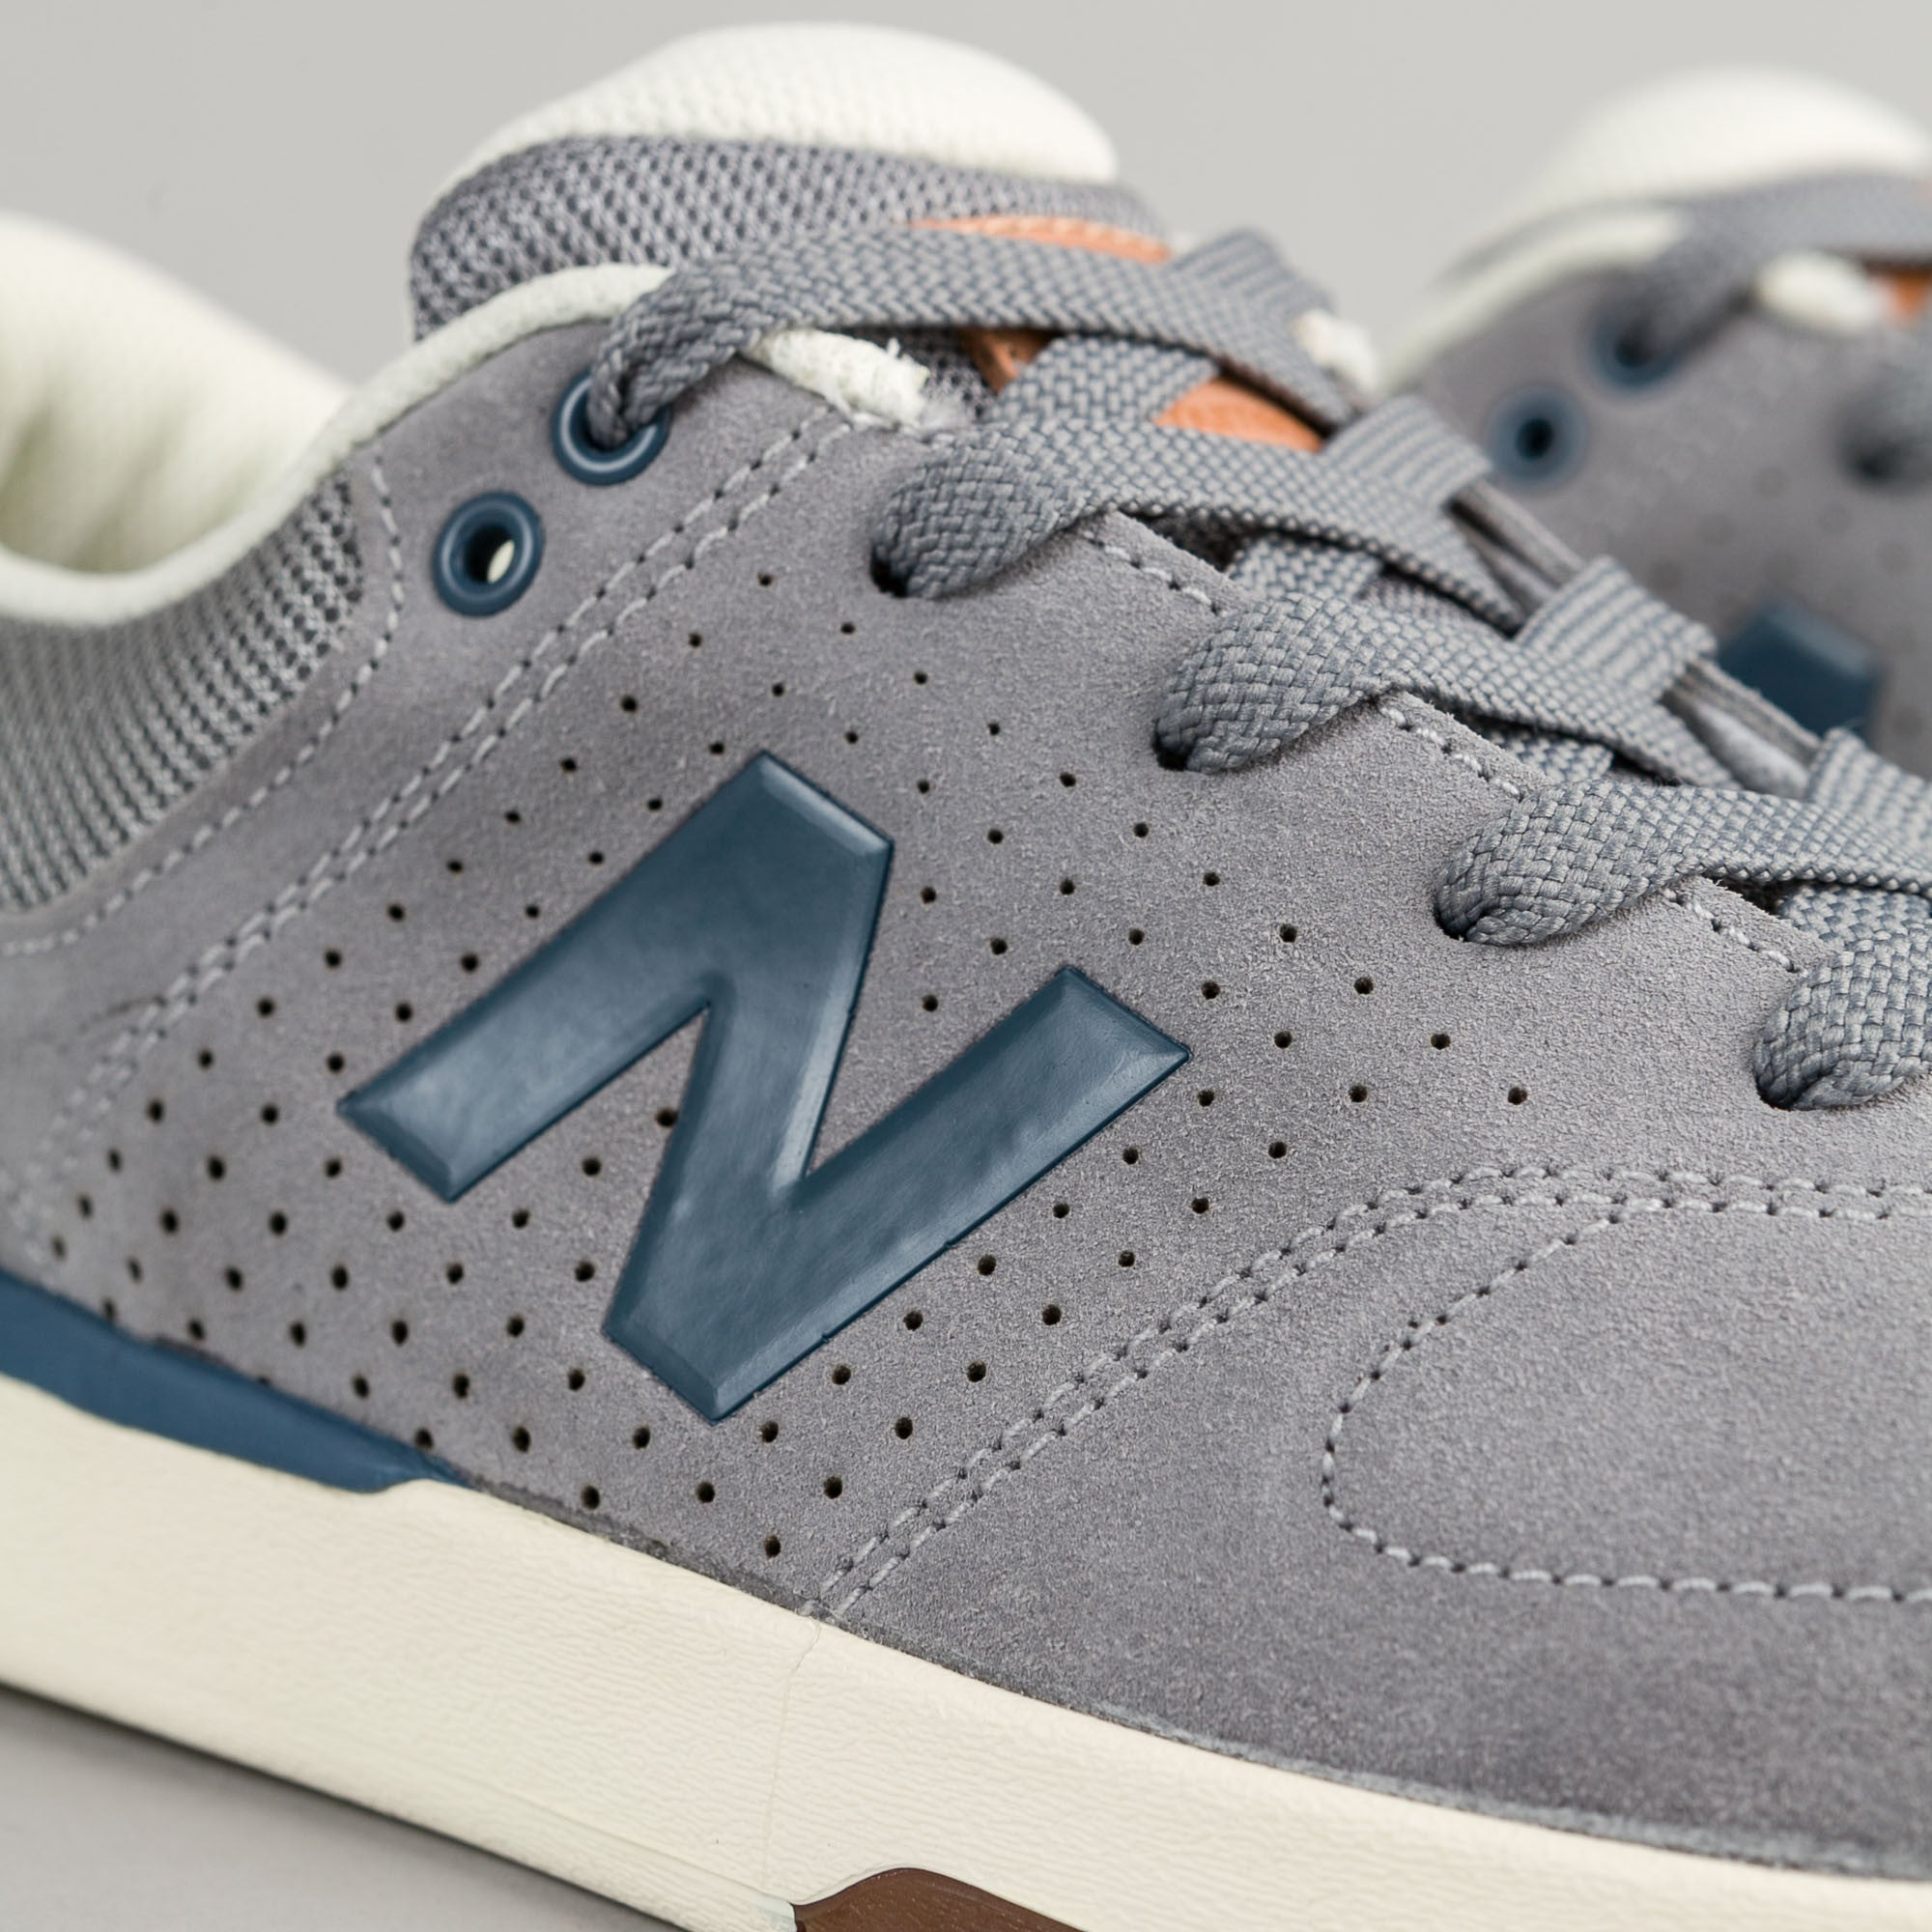 New Balance Numeric PJ Stratford 533 Shoes - Thunder / Navy